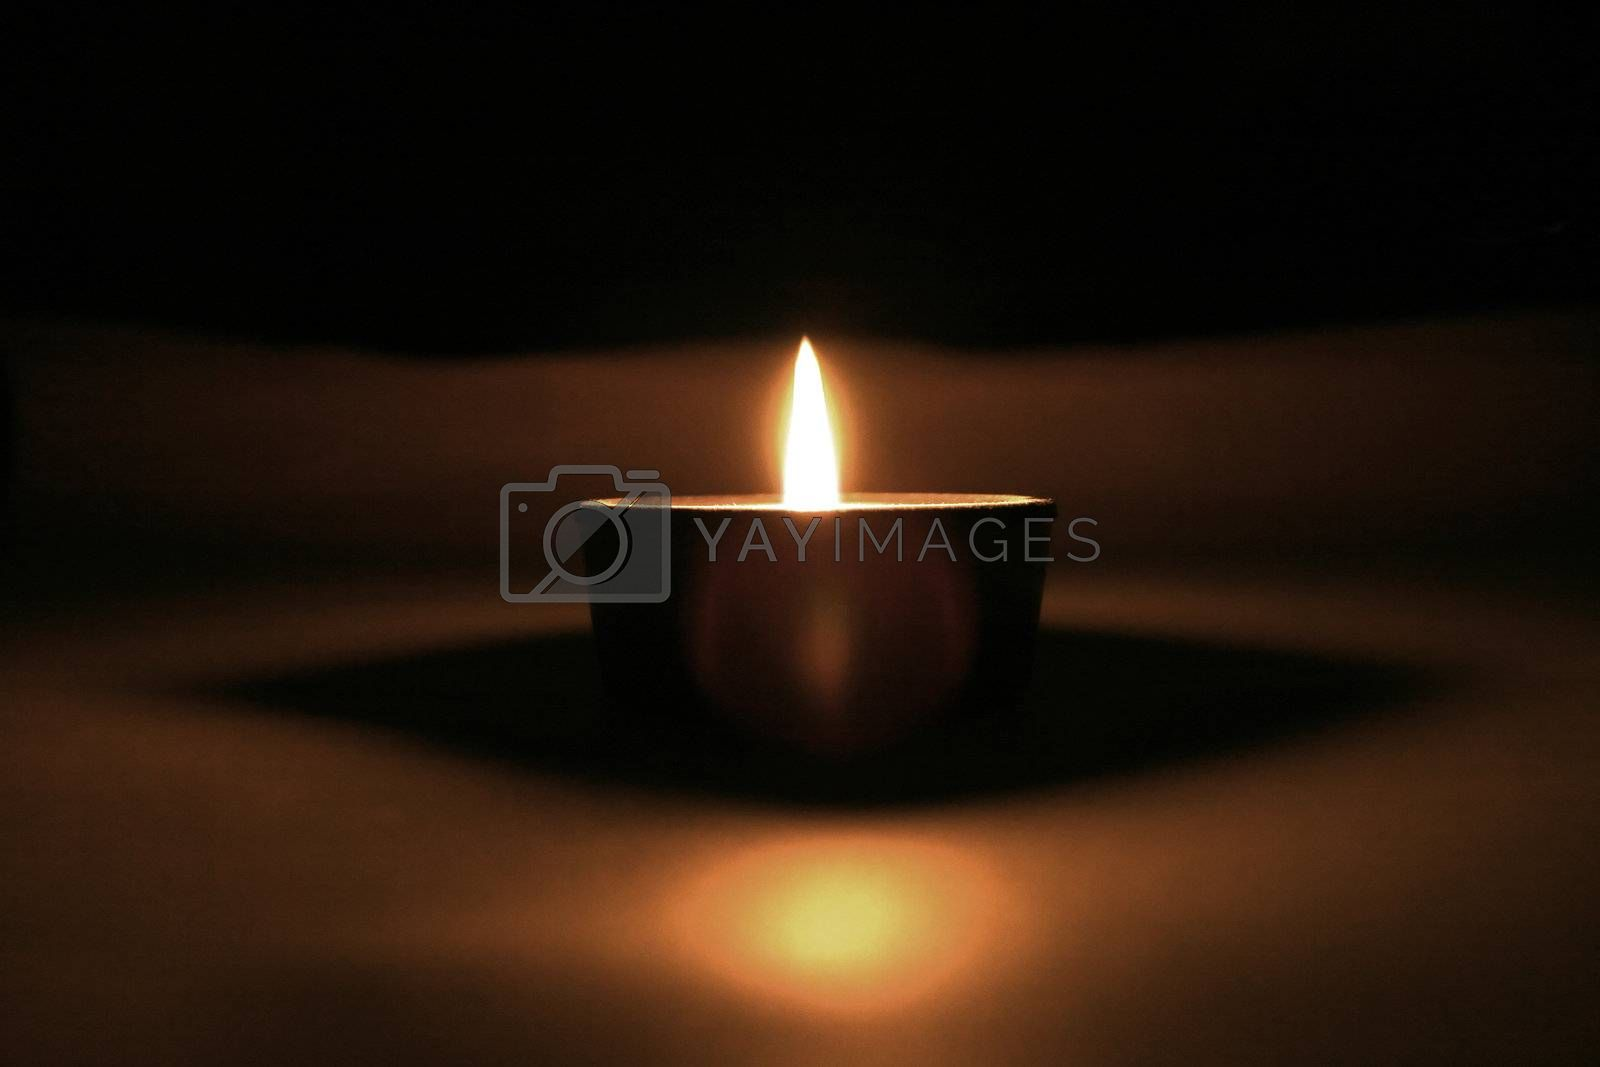 Candle by Koufax73